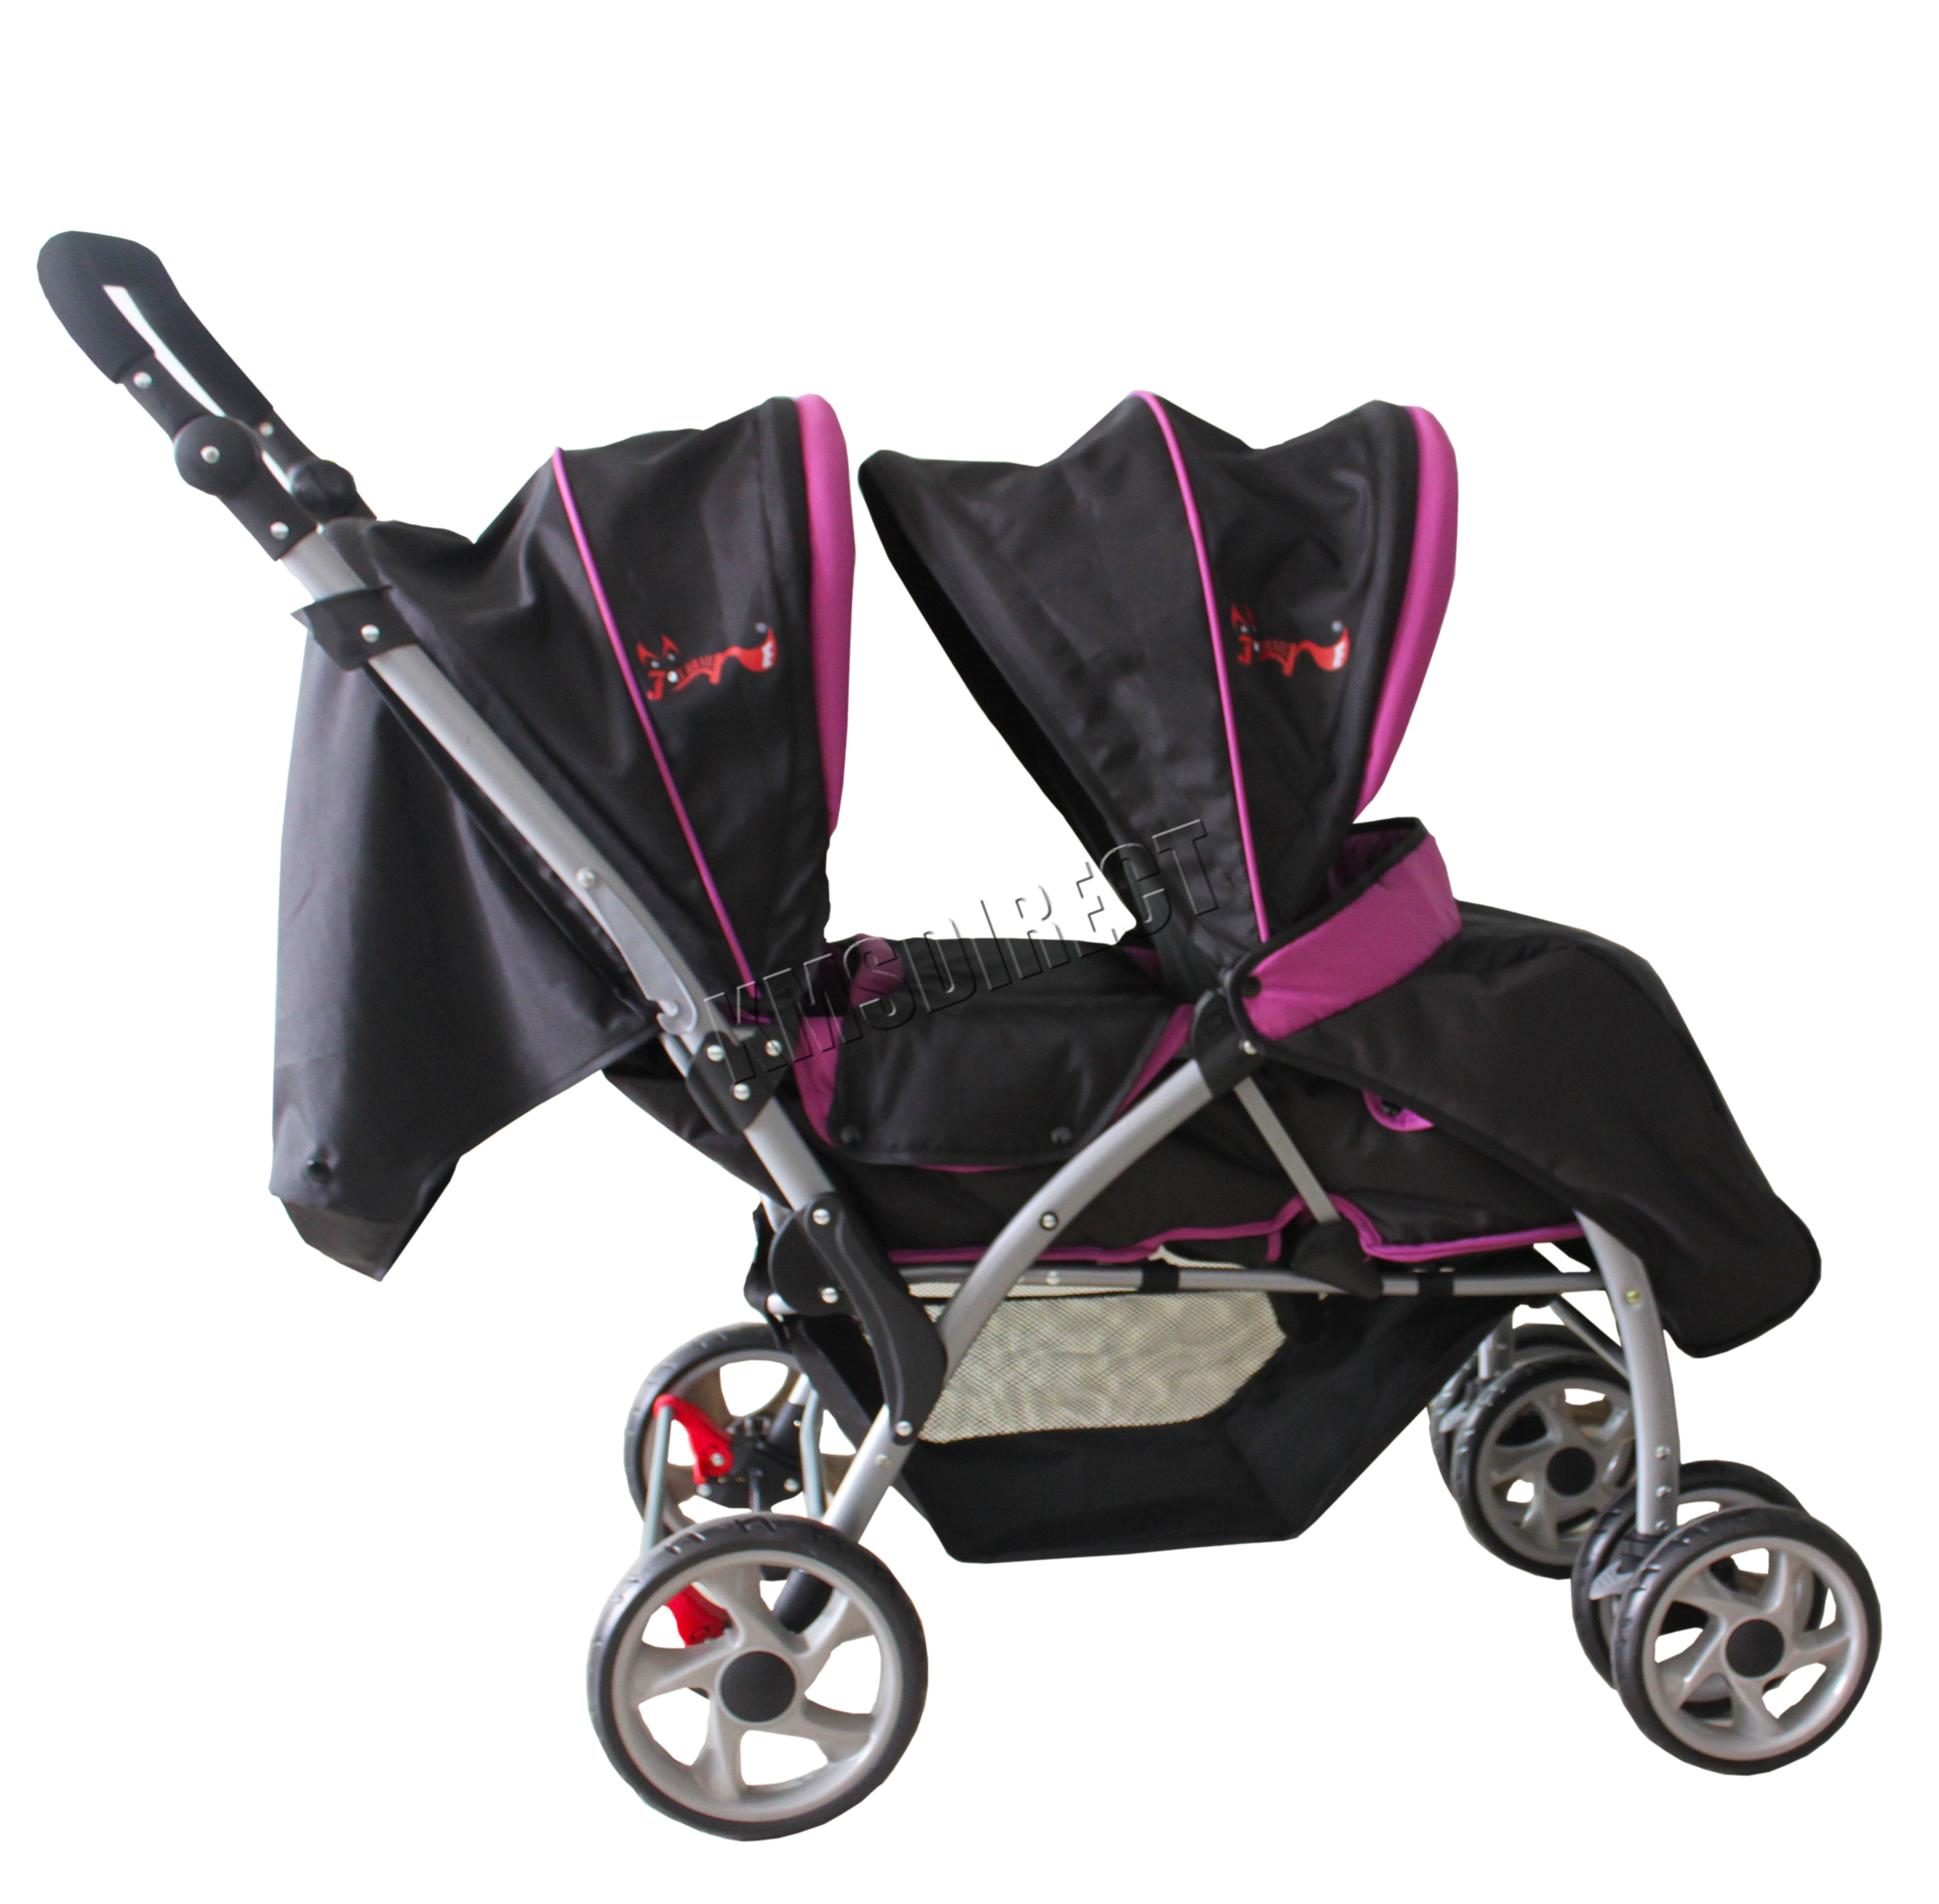 Pram Pushchair Toys Foxhunter Baby Toddler Tandem Double Stroller Twin